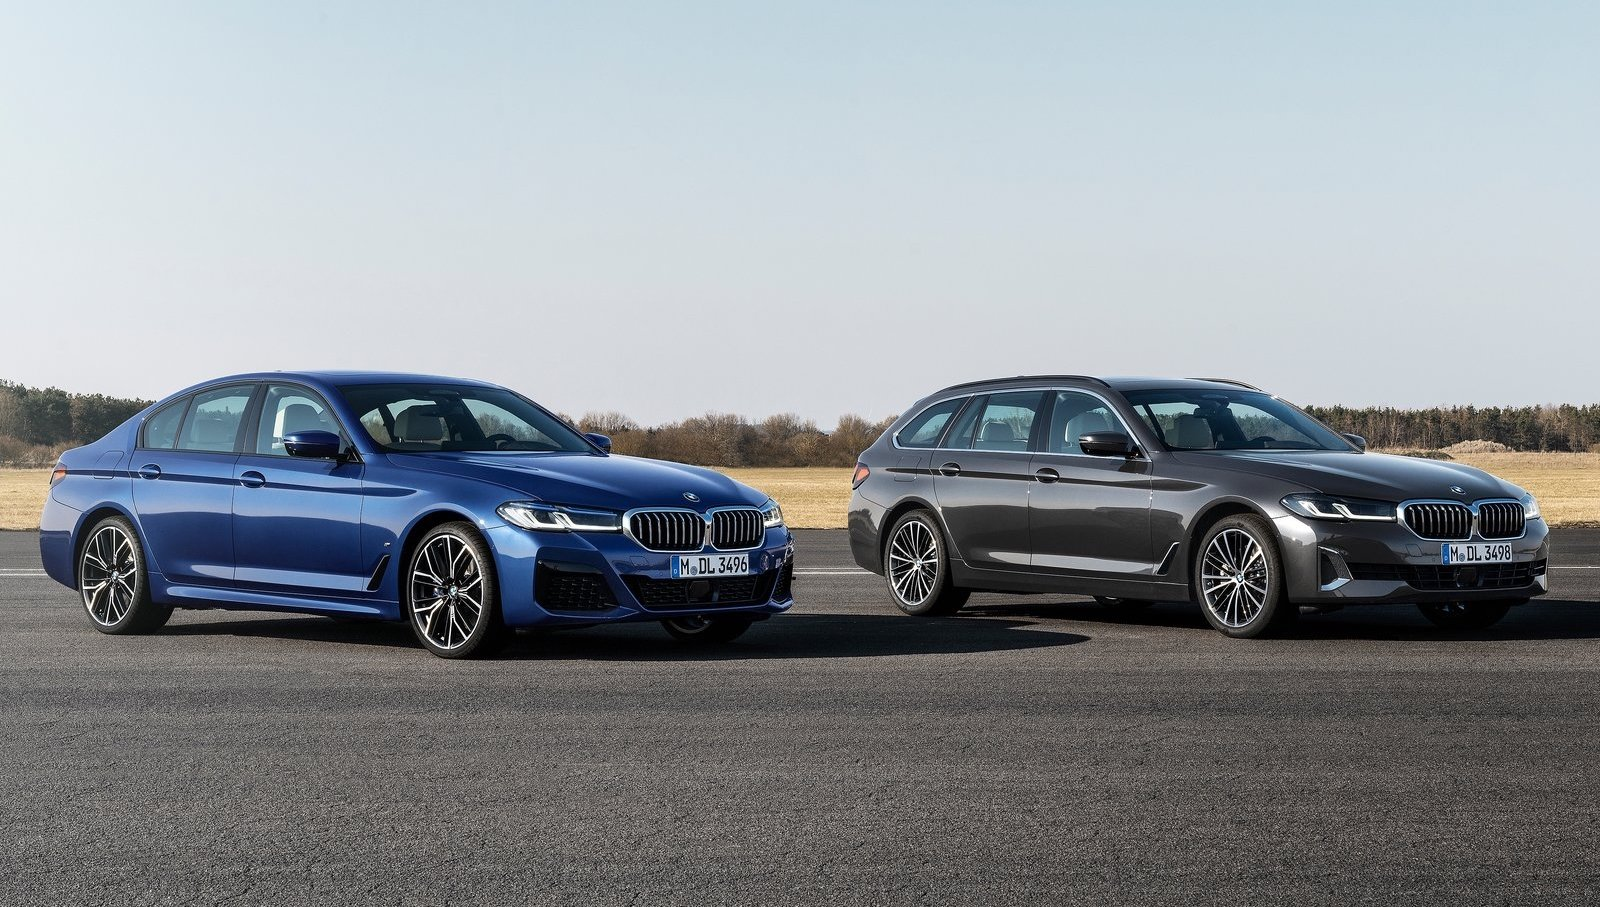 2021 Bmw 5 Series Revealed With 48v Mild Hybrid Tech Performancedrive